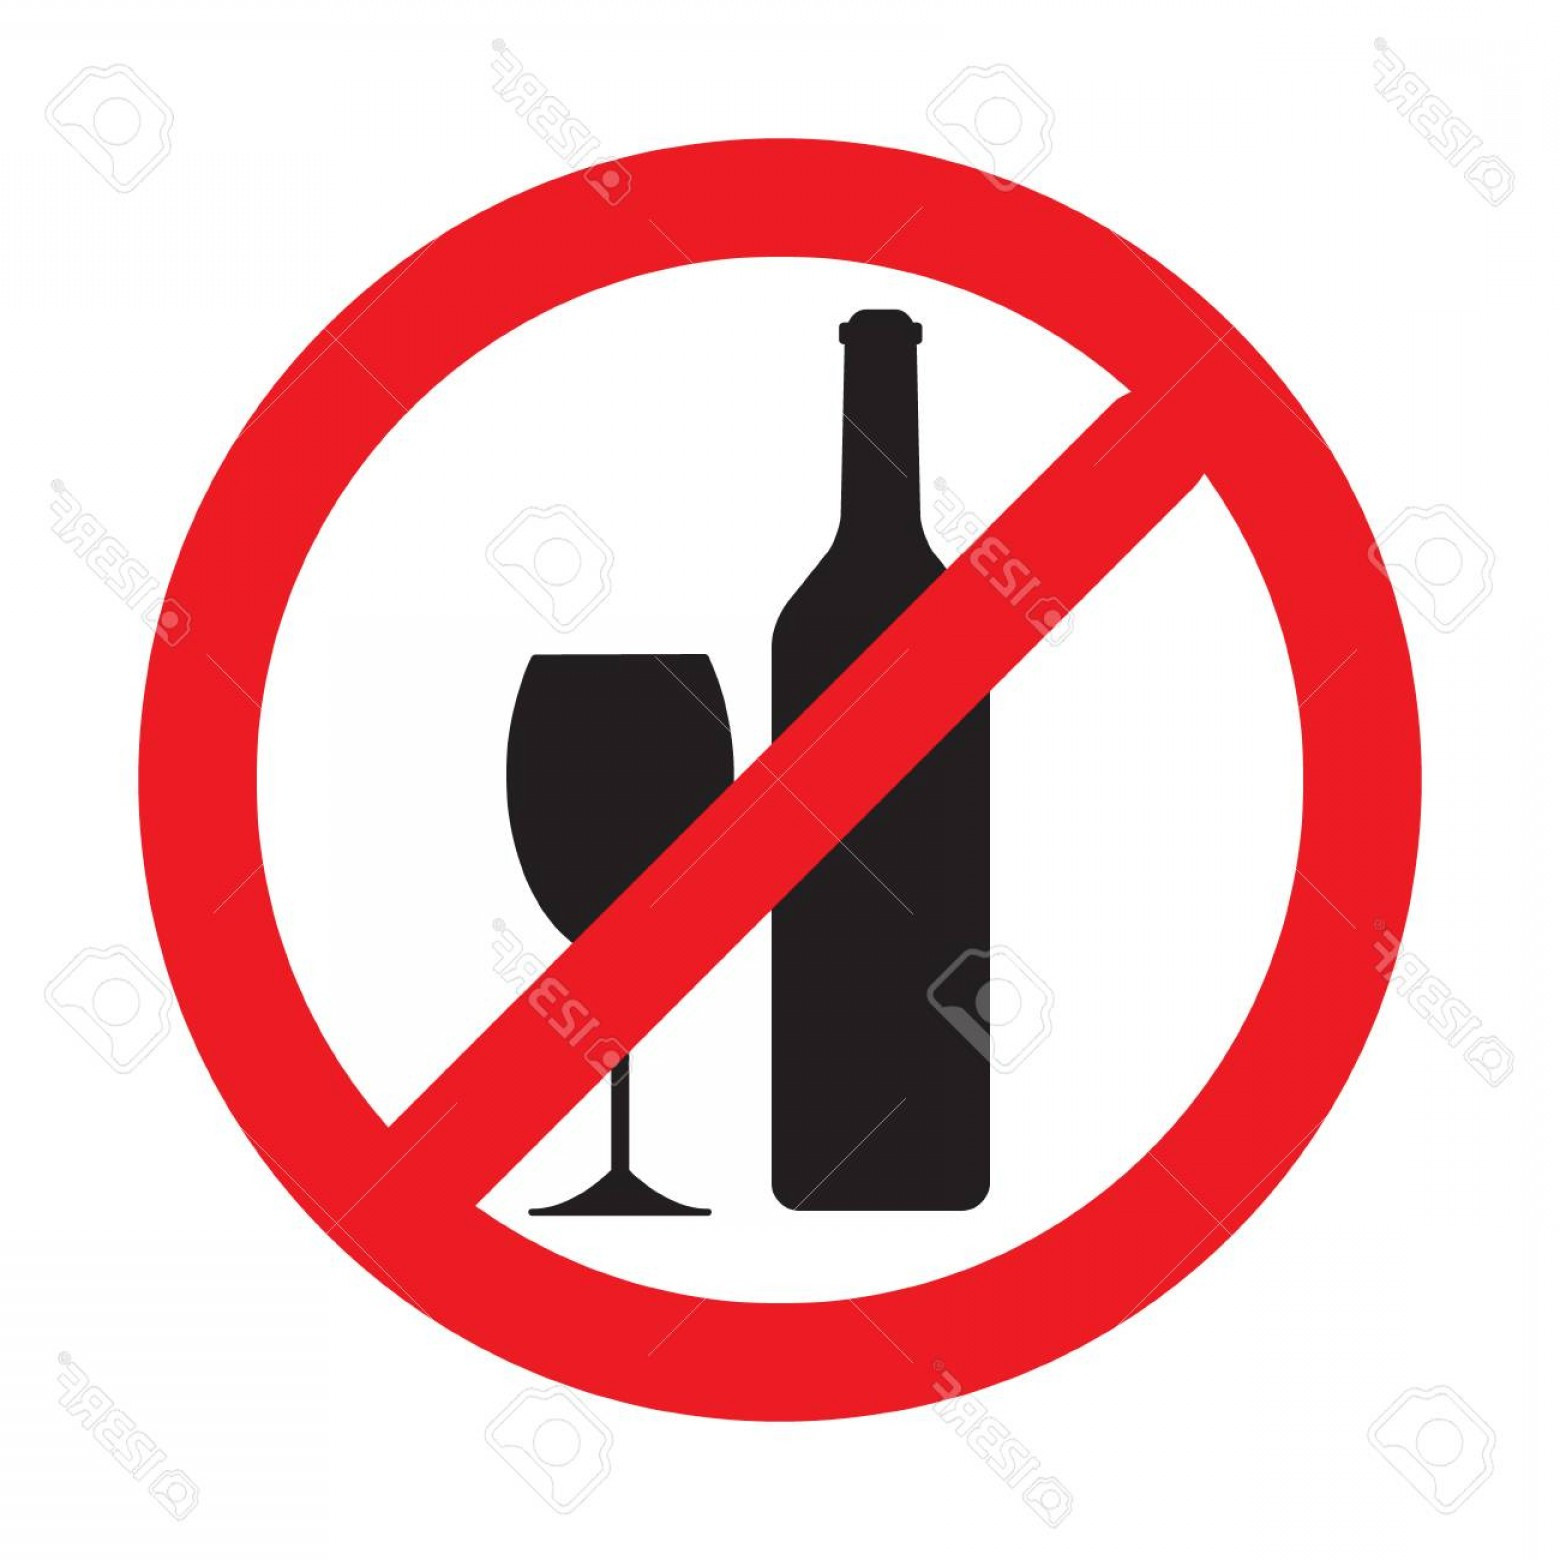 Vector No Alcohol: Photostock Vector No Alcohol Drink Sign Vector Logo Element No Drinking Sign No Alcohol Sign Isolated On White Backgro